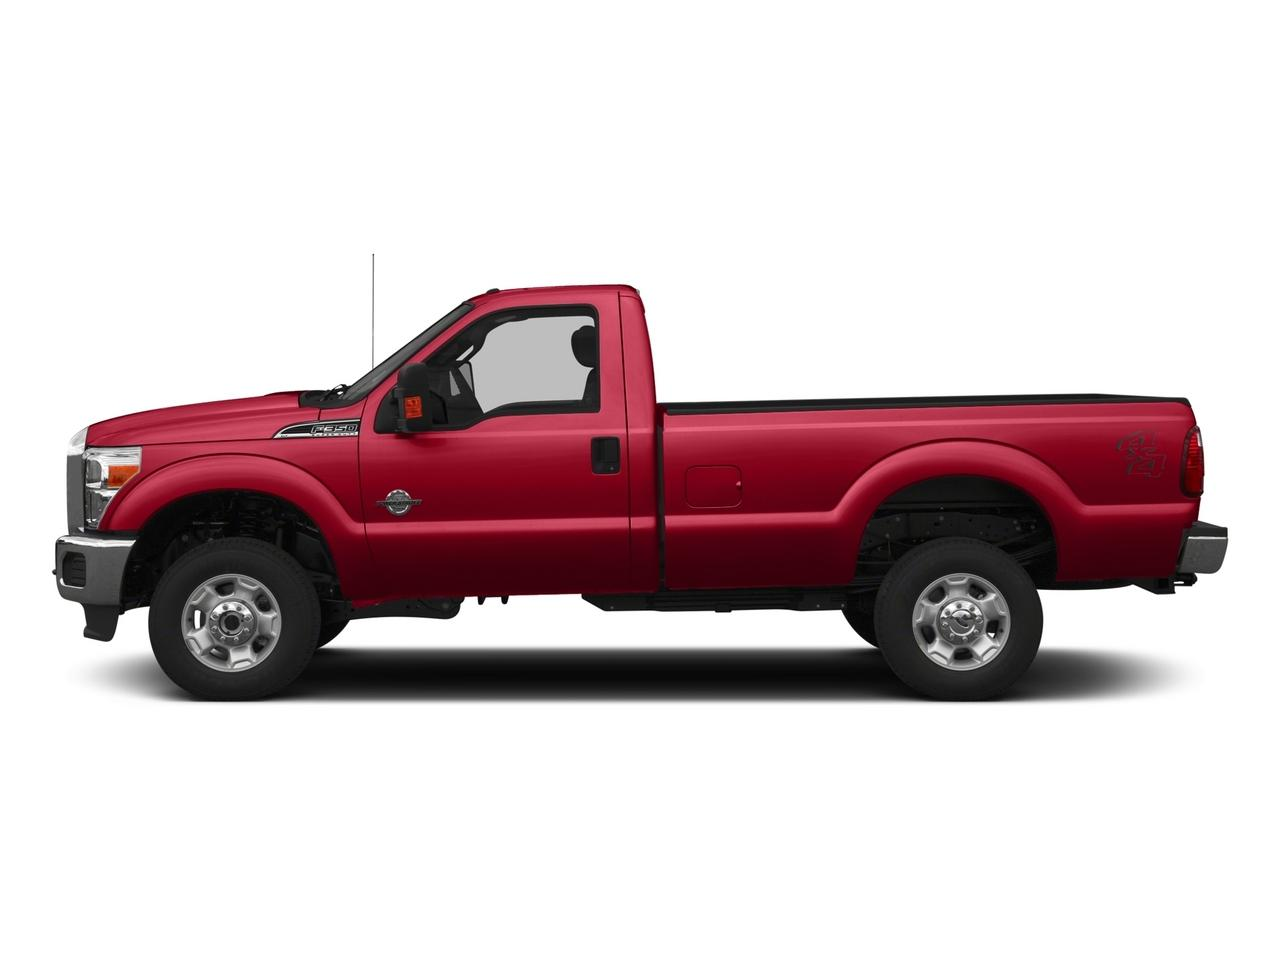 Used 2015 Ford F-350 Super Duty XL with VIN 1FTRF3B68FEB71504 for sale in Caledonia, Minnesota